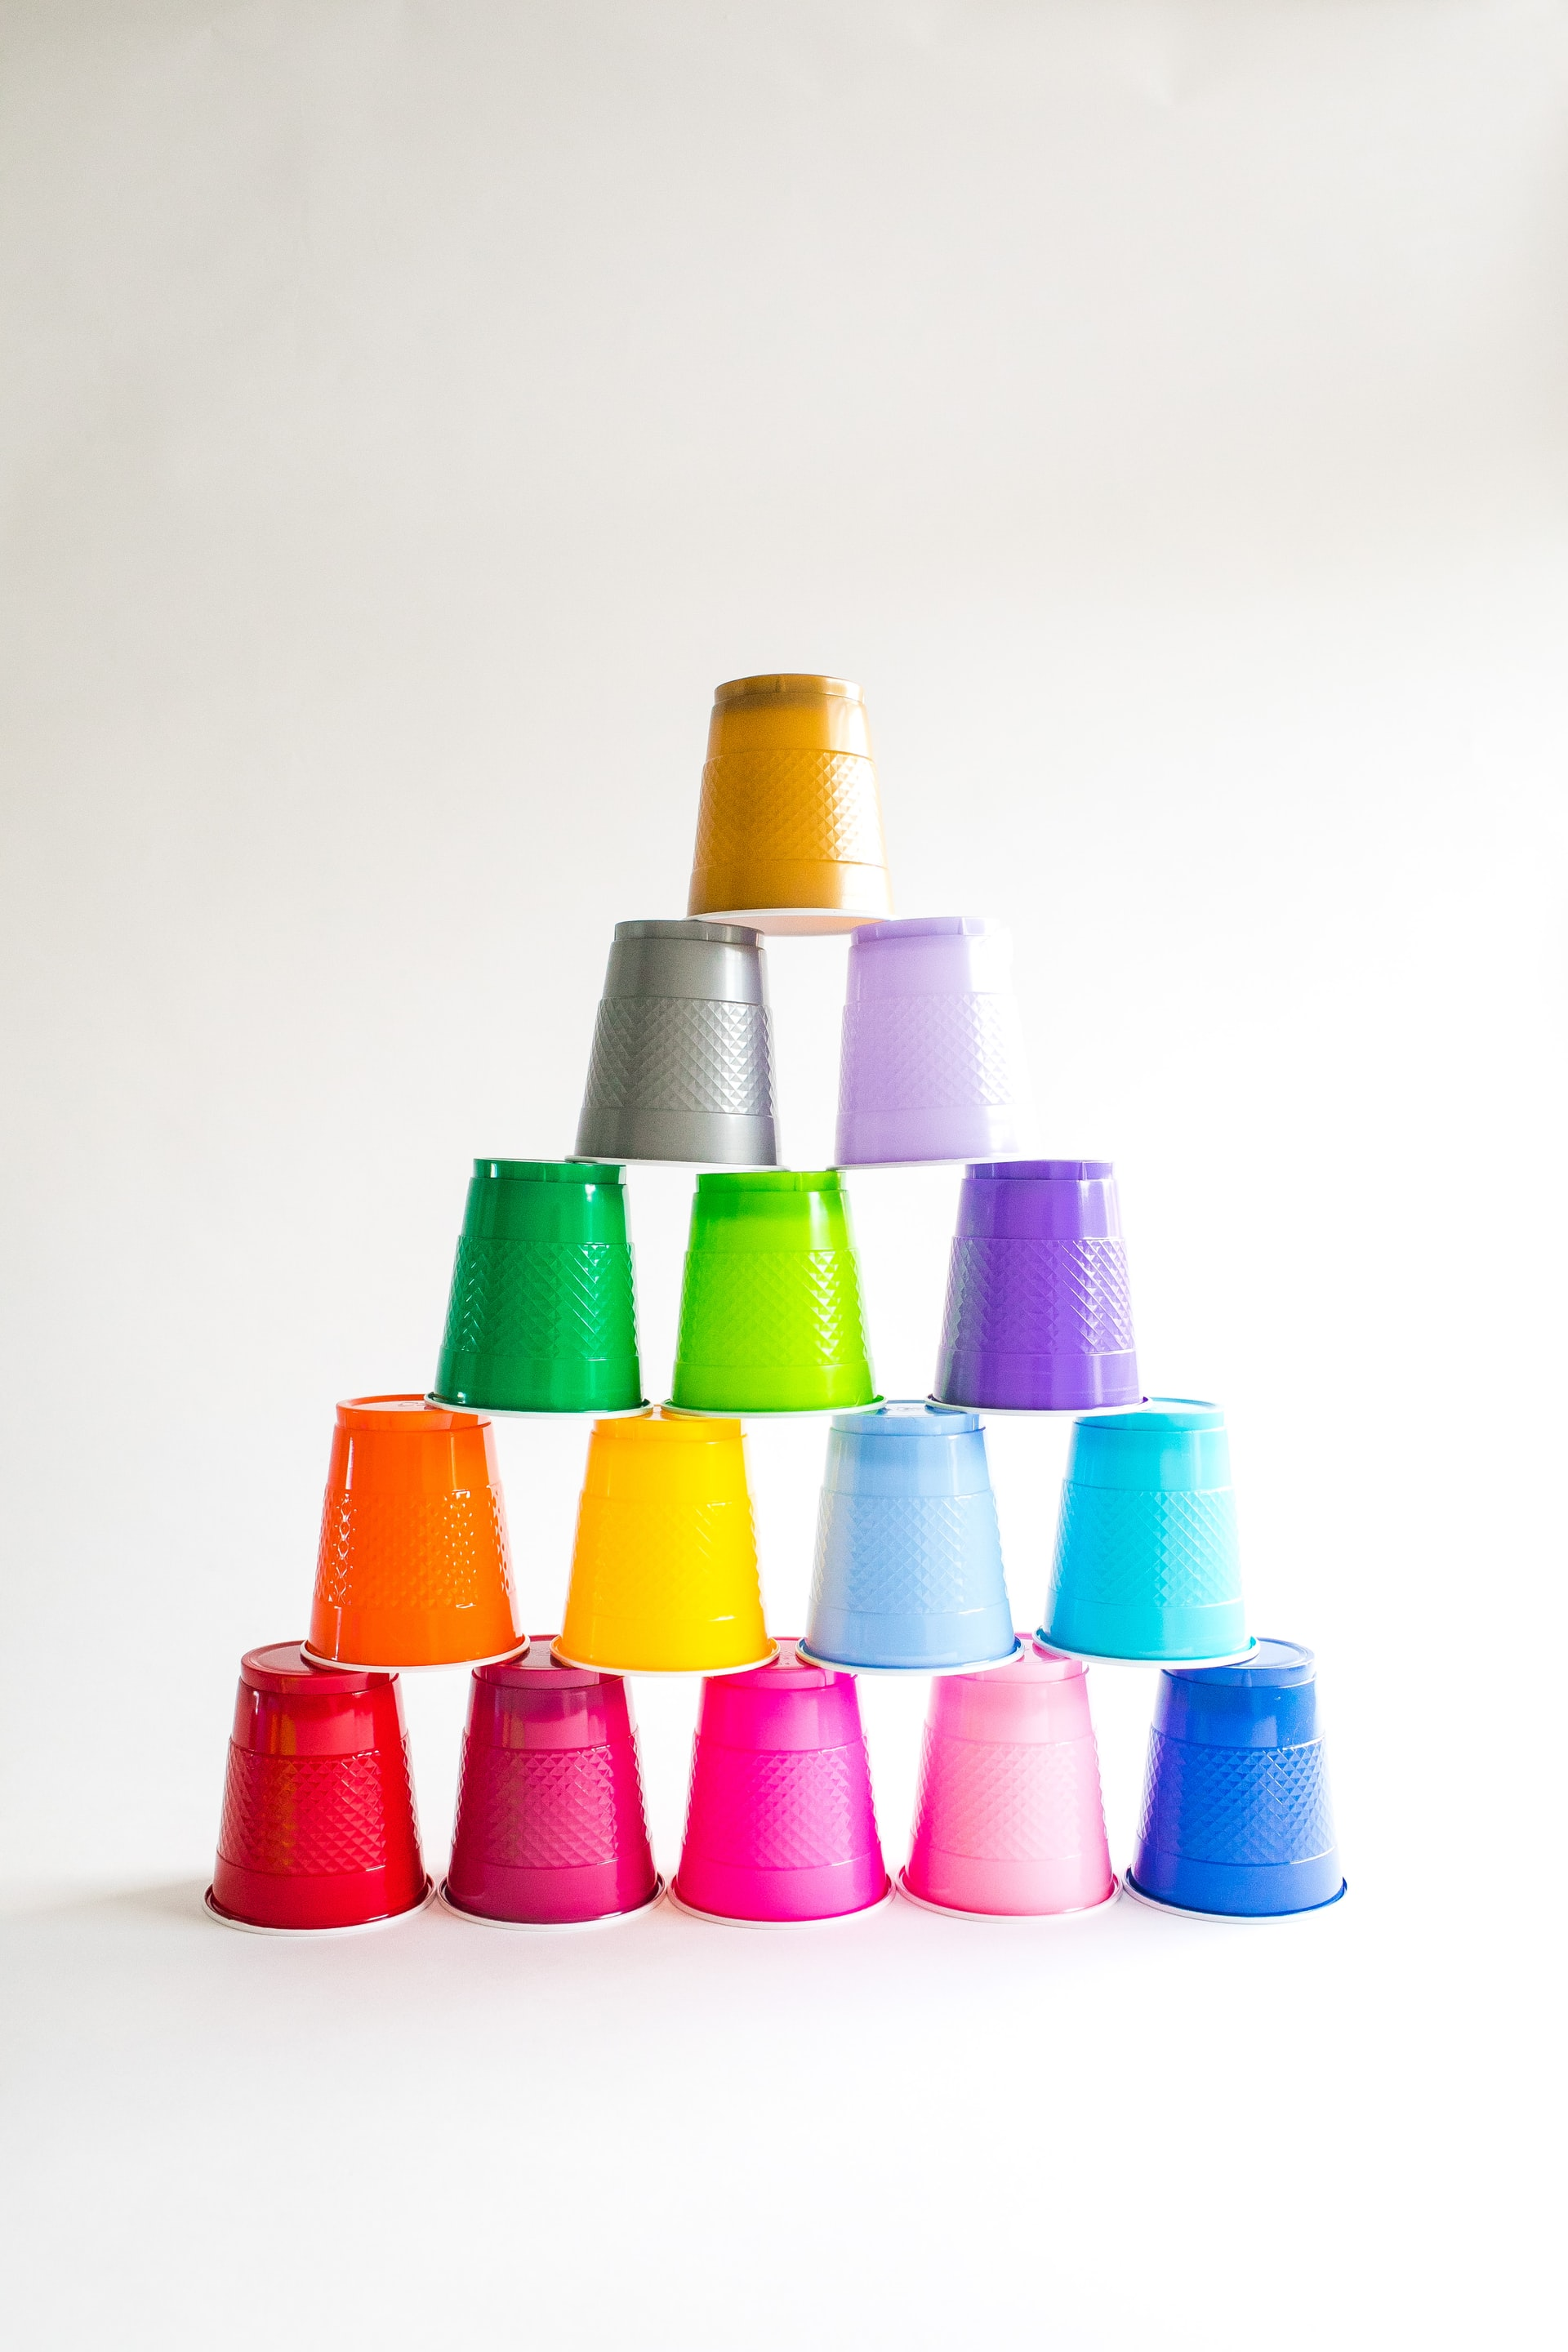 Pyramid of inverted plastic drinking cups